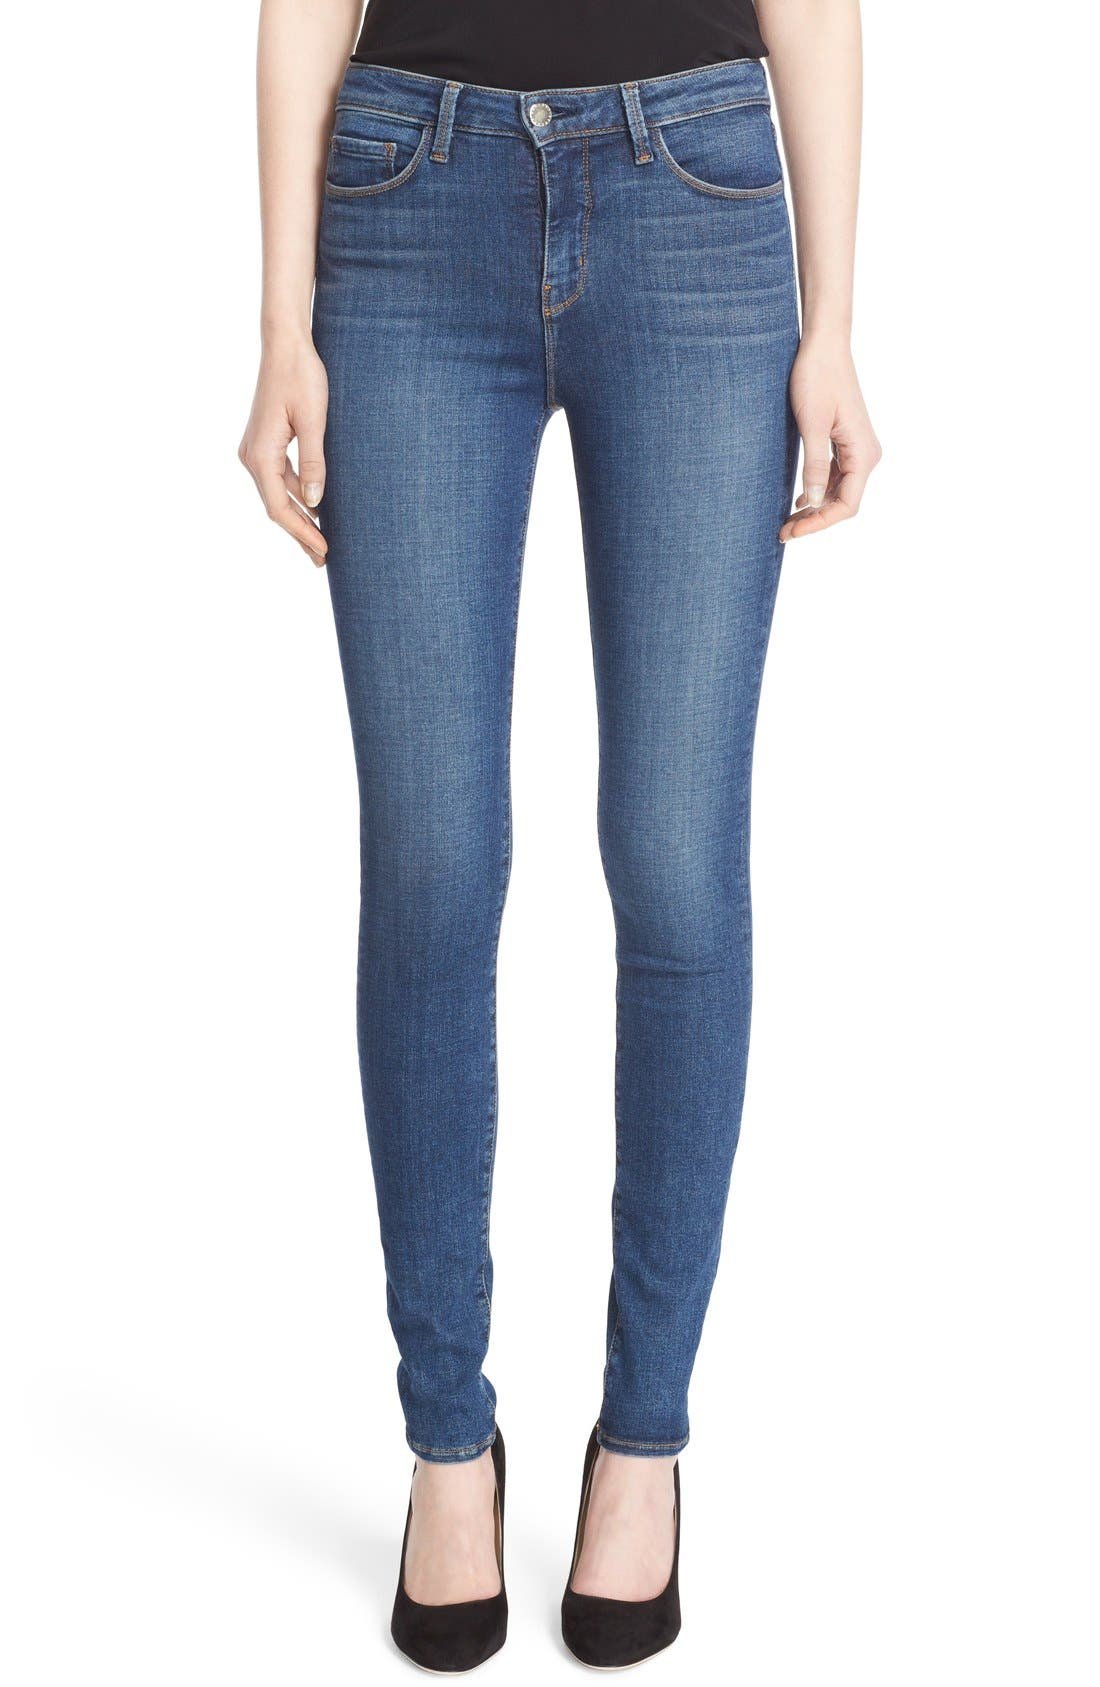 '30' High Rise Skinny Jeans,                         Main,                         color, DARK VINTAGE